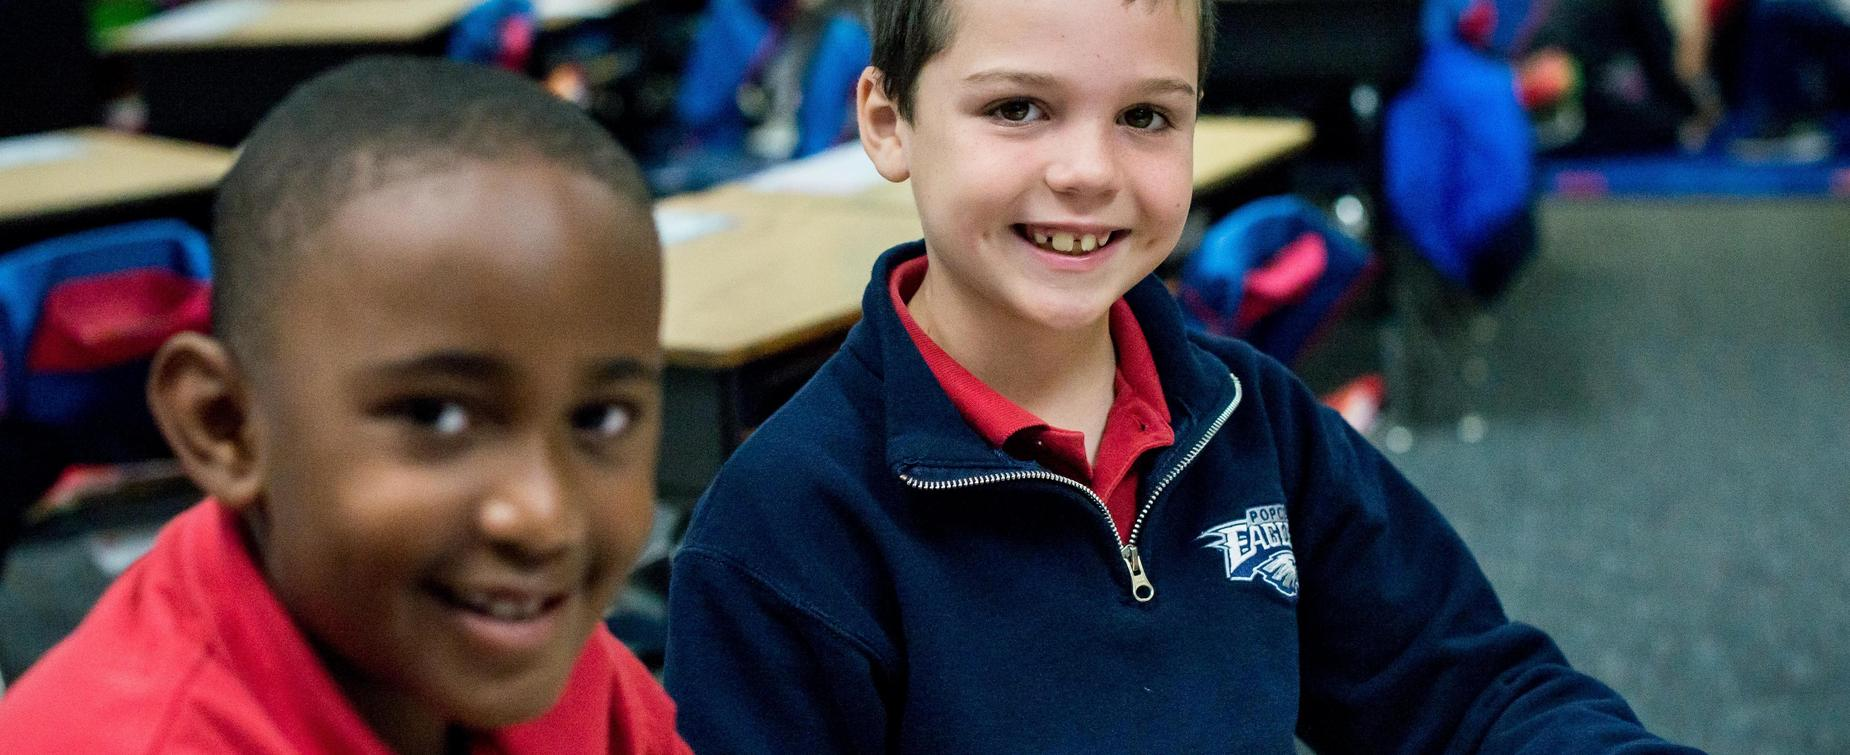 Two Lower School students smiling